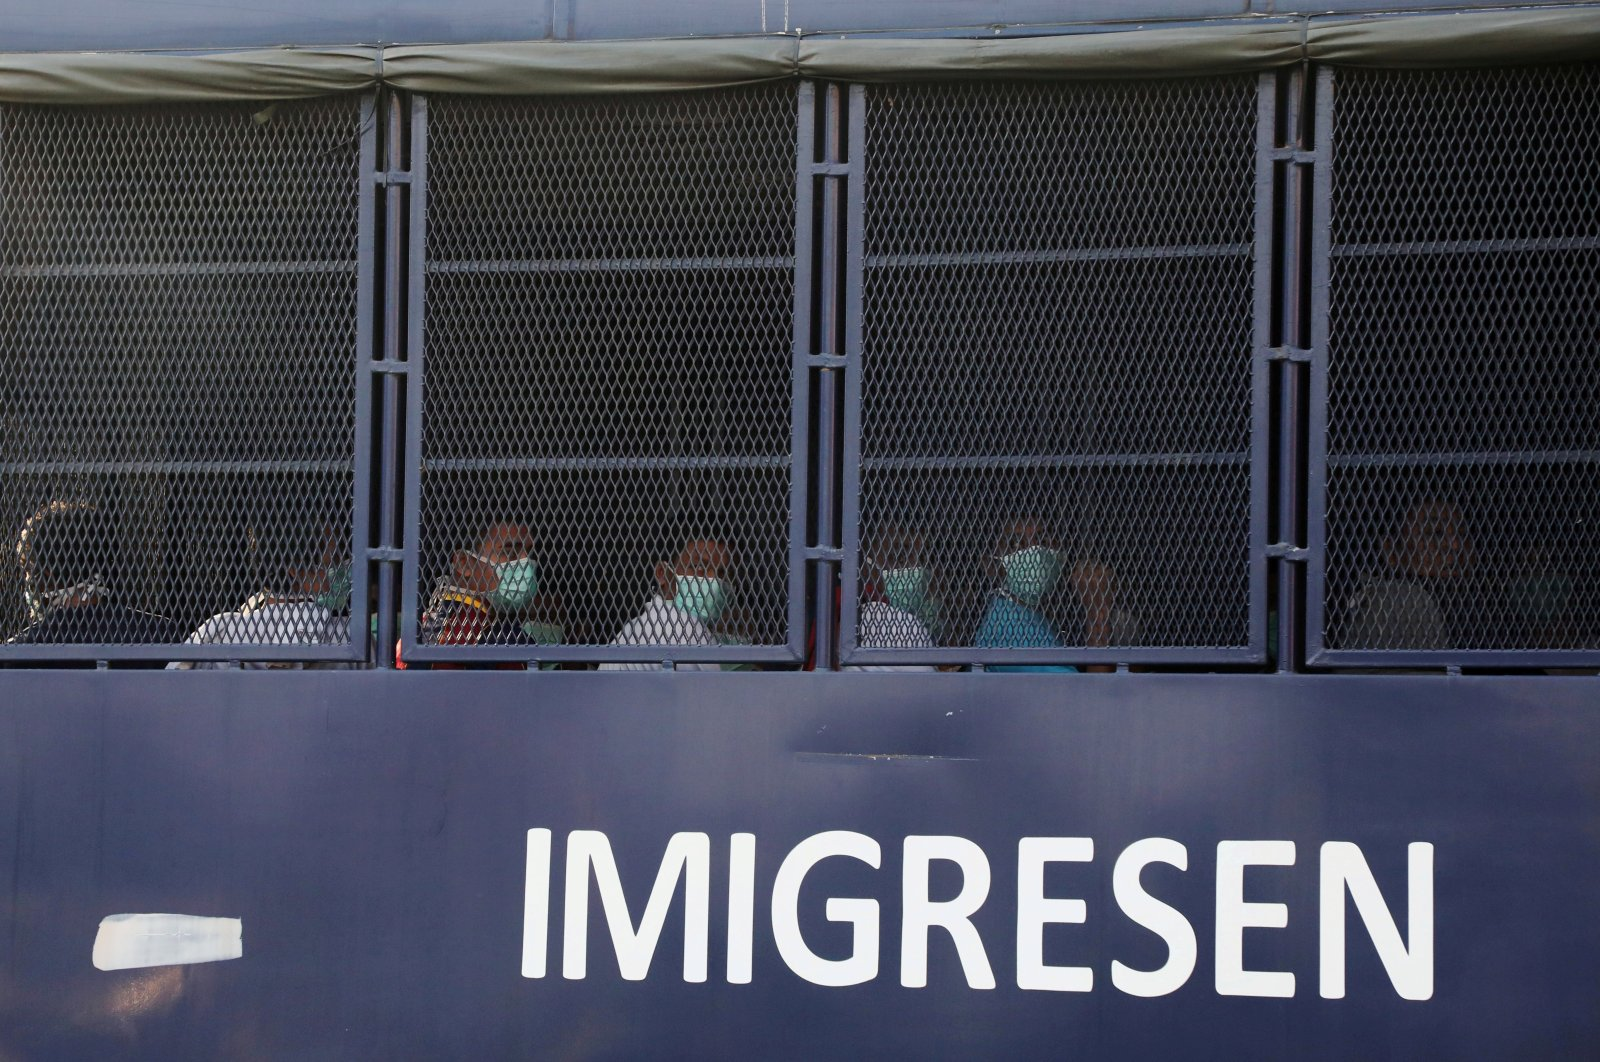 Myanmar migrants to be deported from Malaysia are seen inside an immigration truck, in Lumut, Malaysia, Feb. 23, 2021. (Reuters Photo)